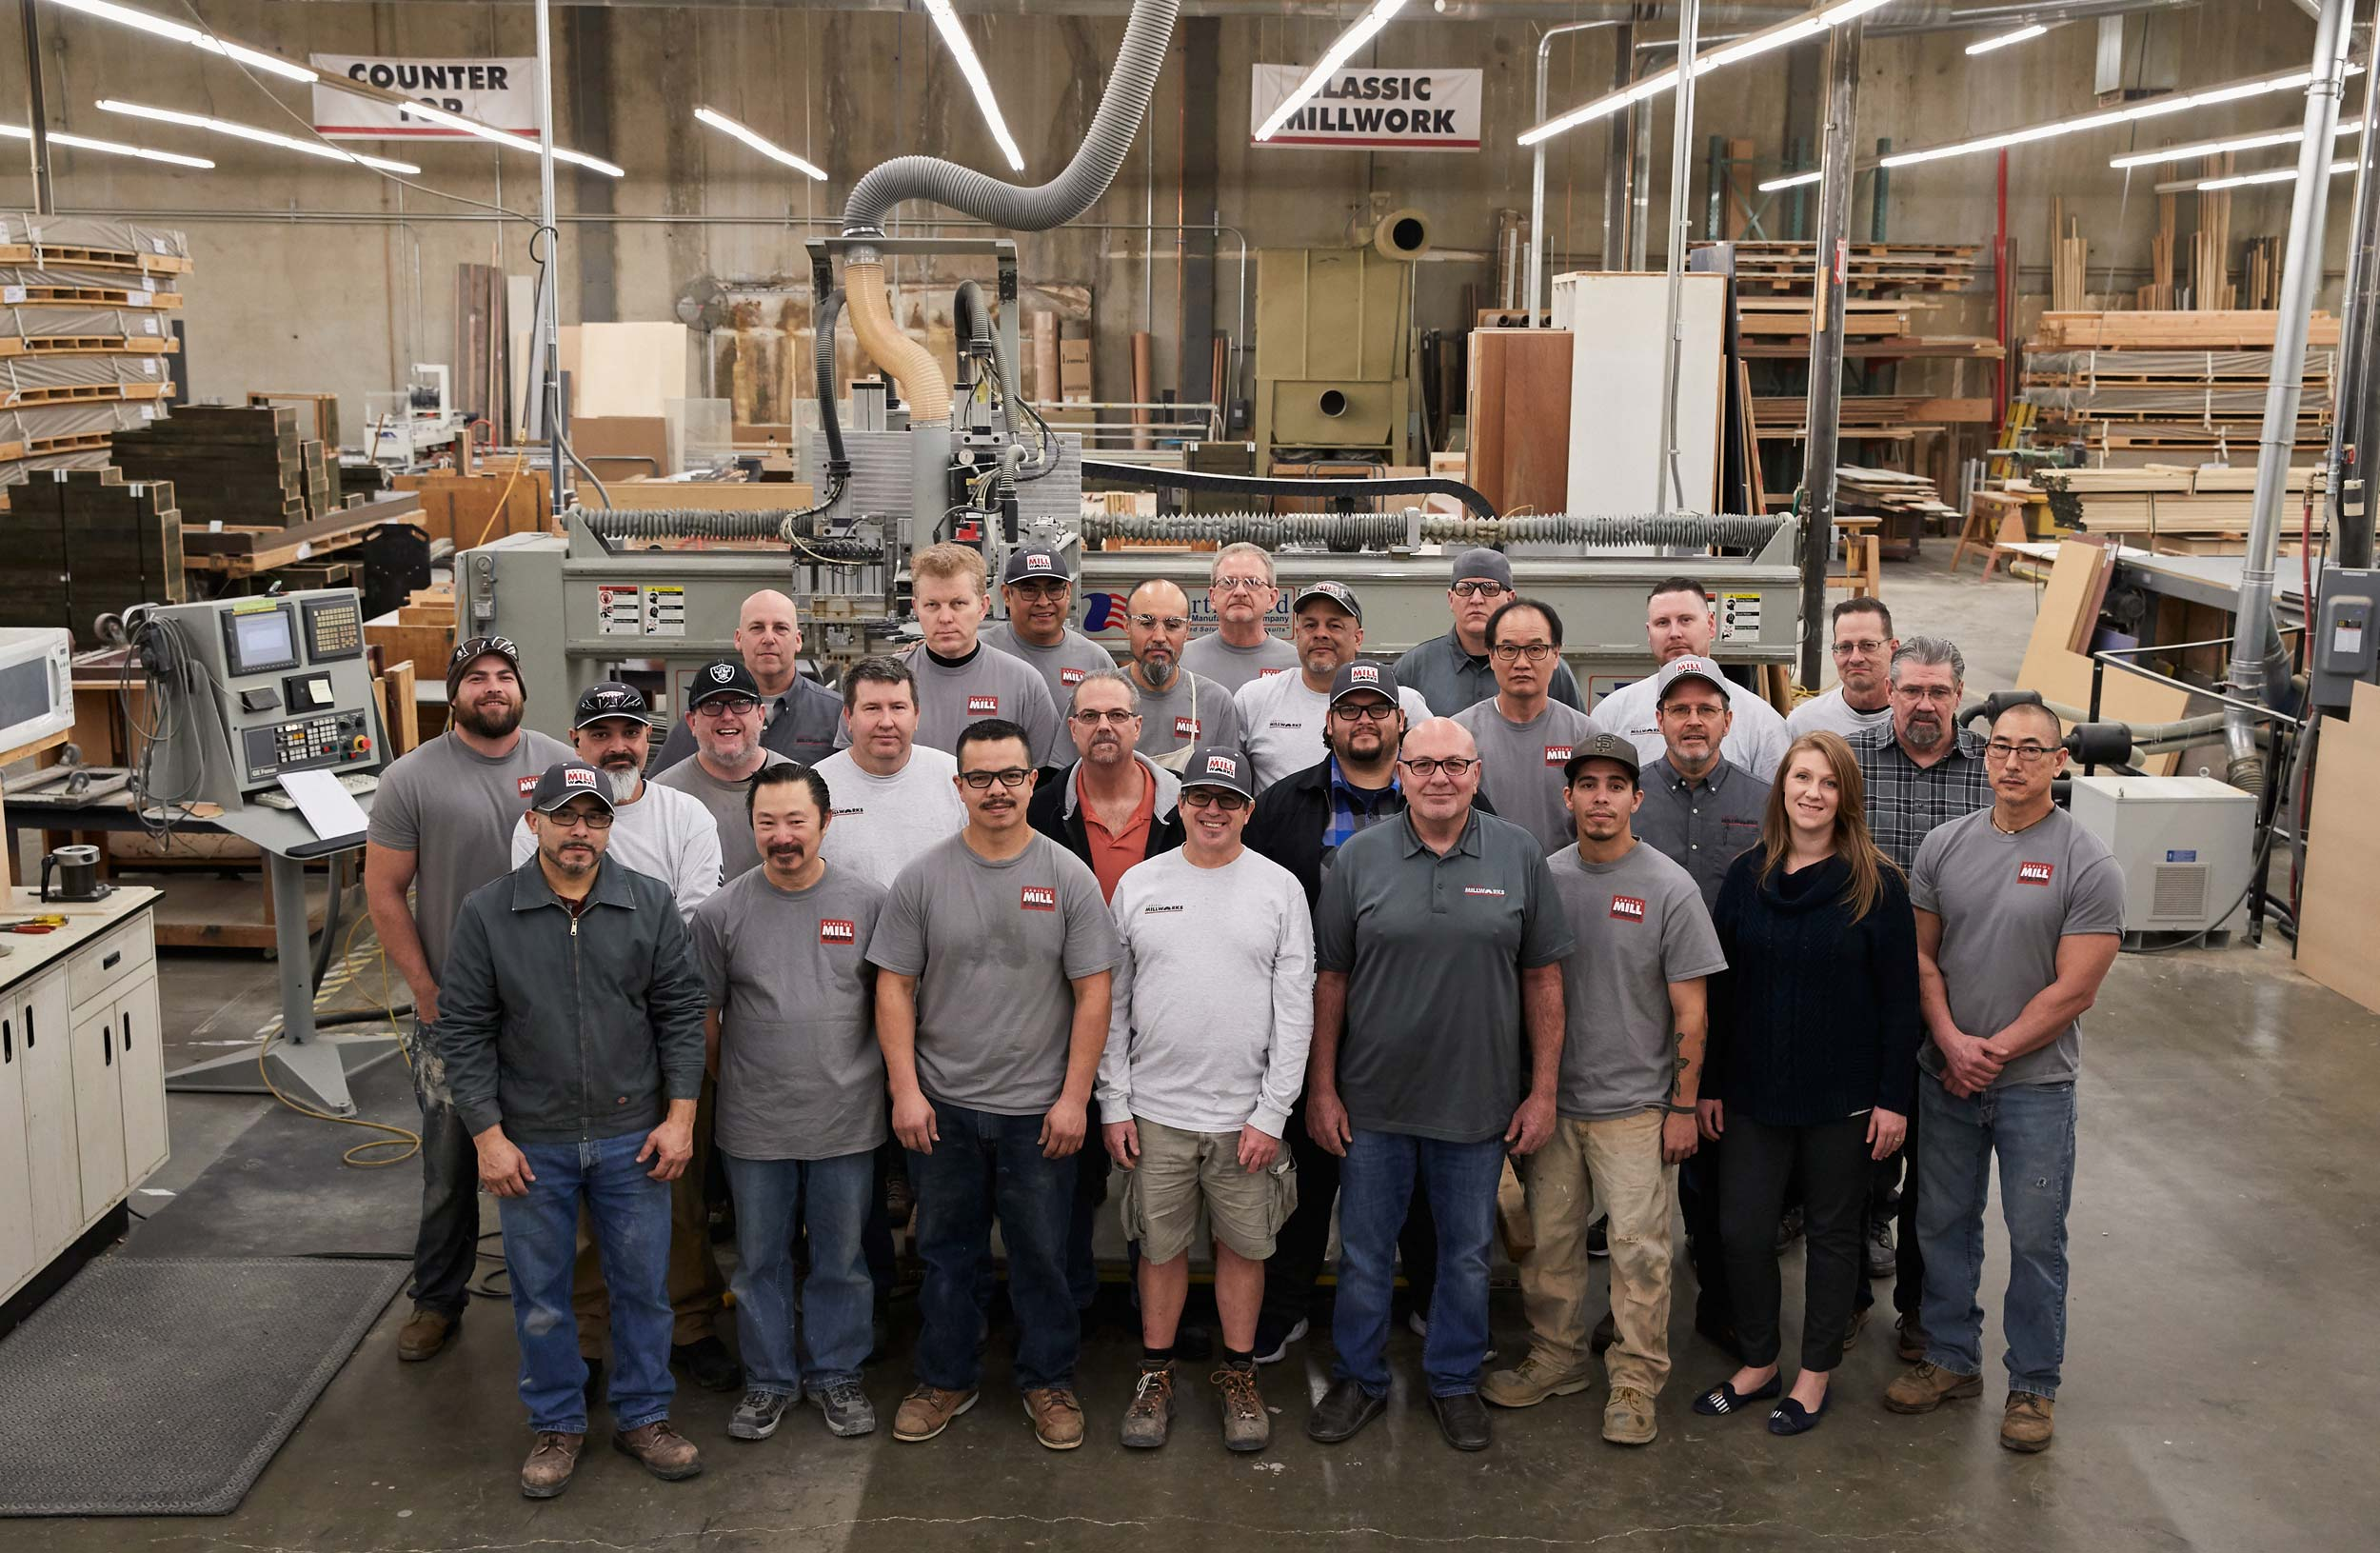 Capitol Mill Works Team Photo